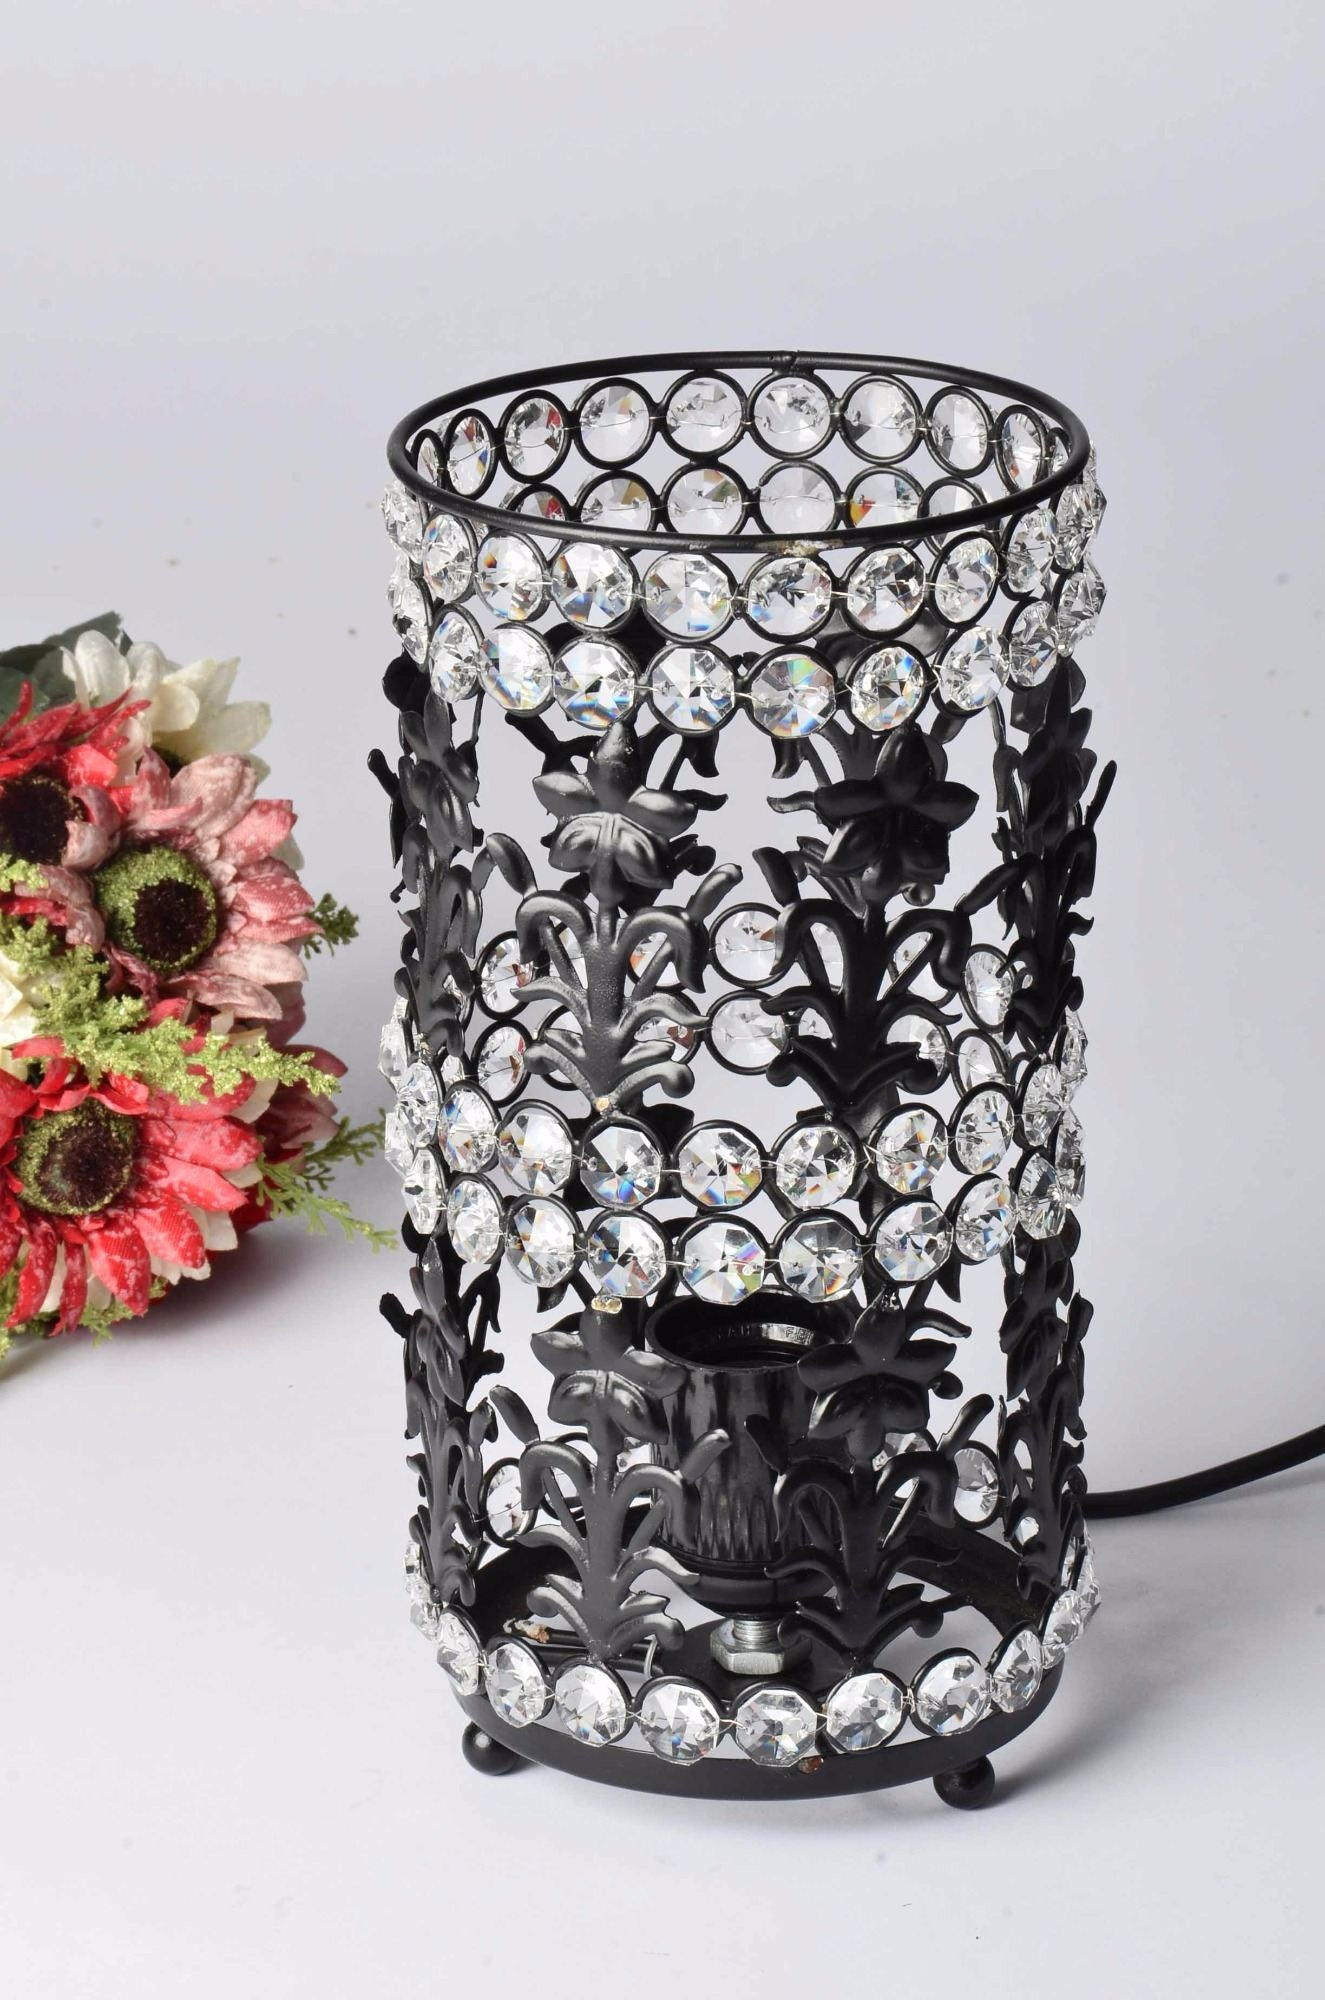 Halina - Glass Crystal Beads Table Lamp - Cylinder with Black Iron Detailing - Simply Roka